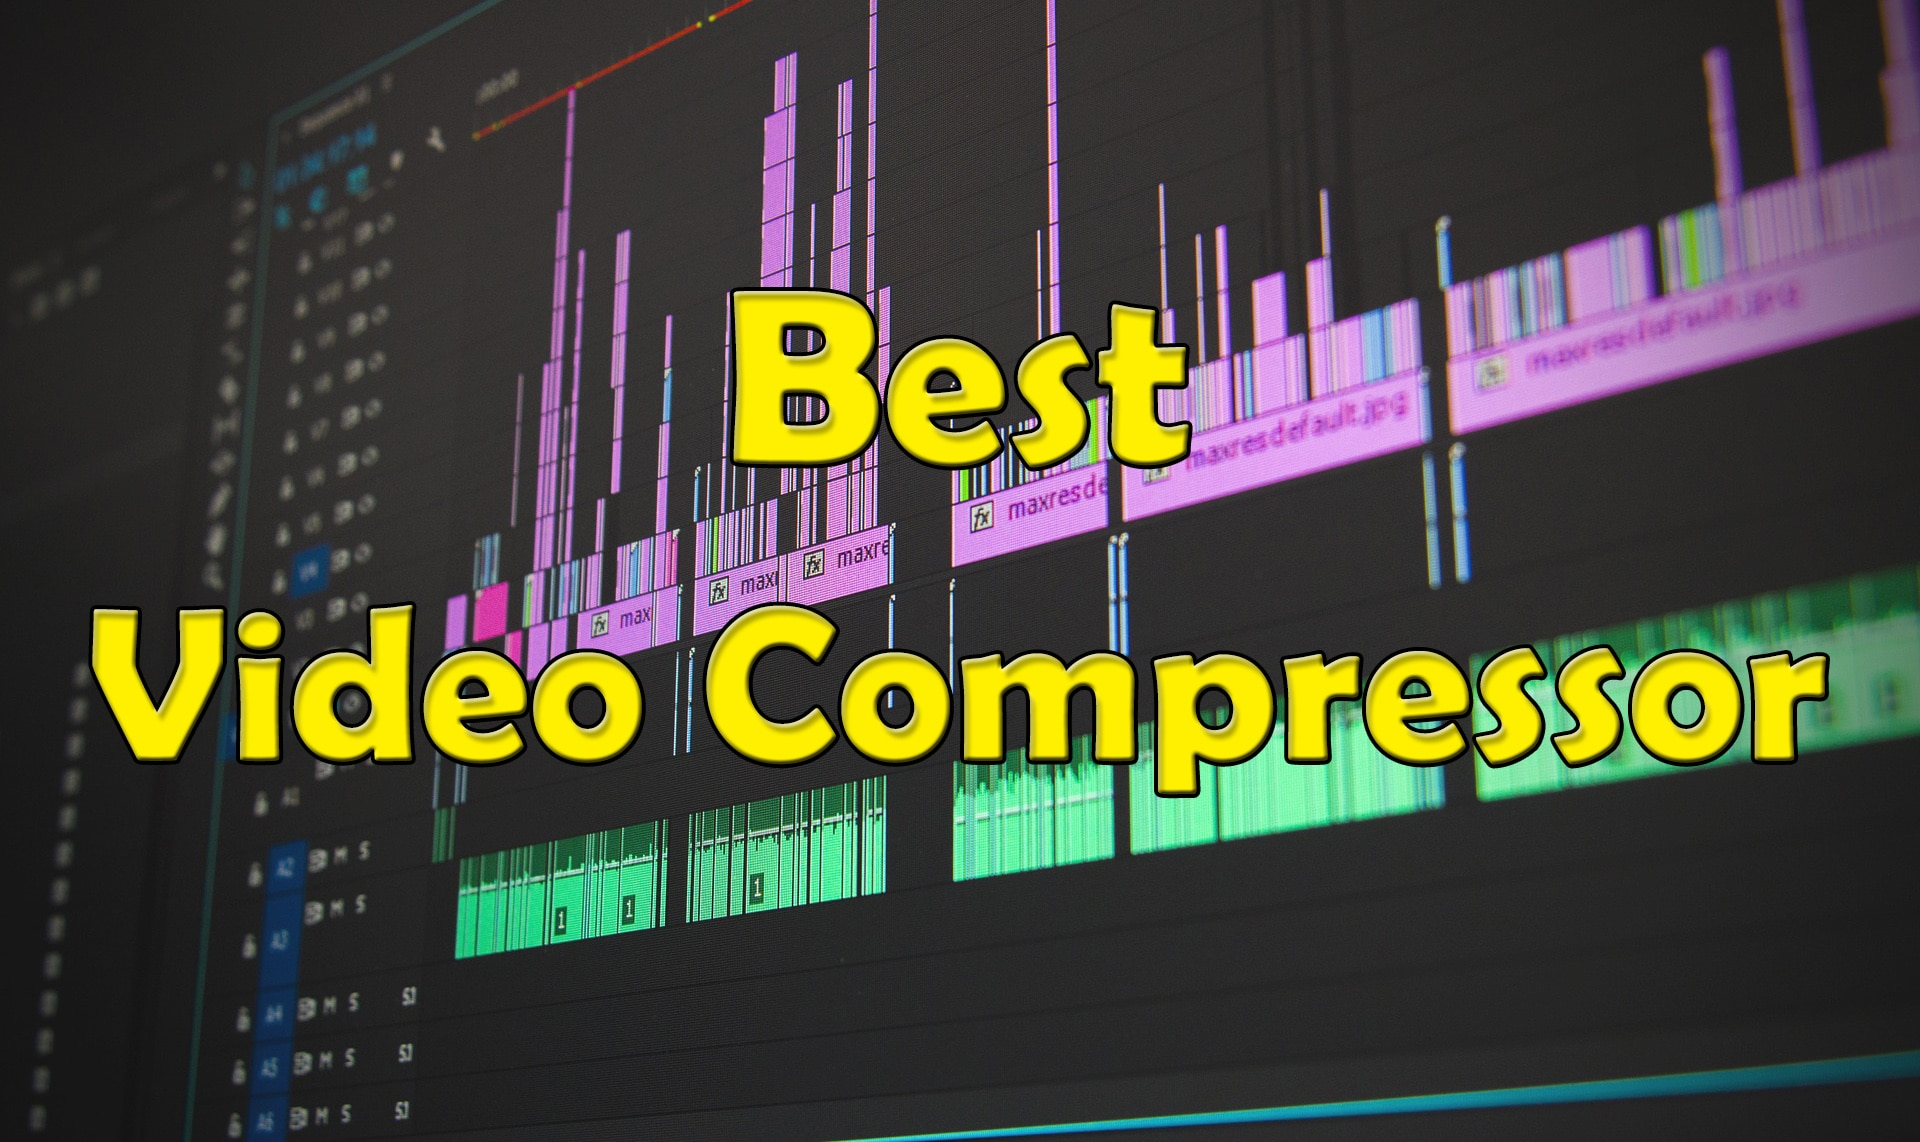 15 Best Video Compressor To Reduce Video Size